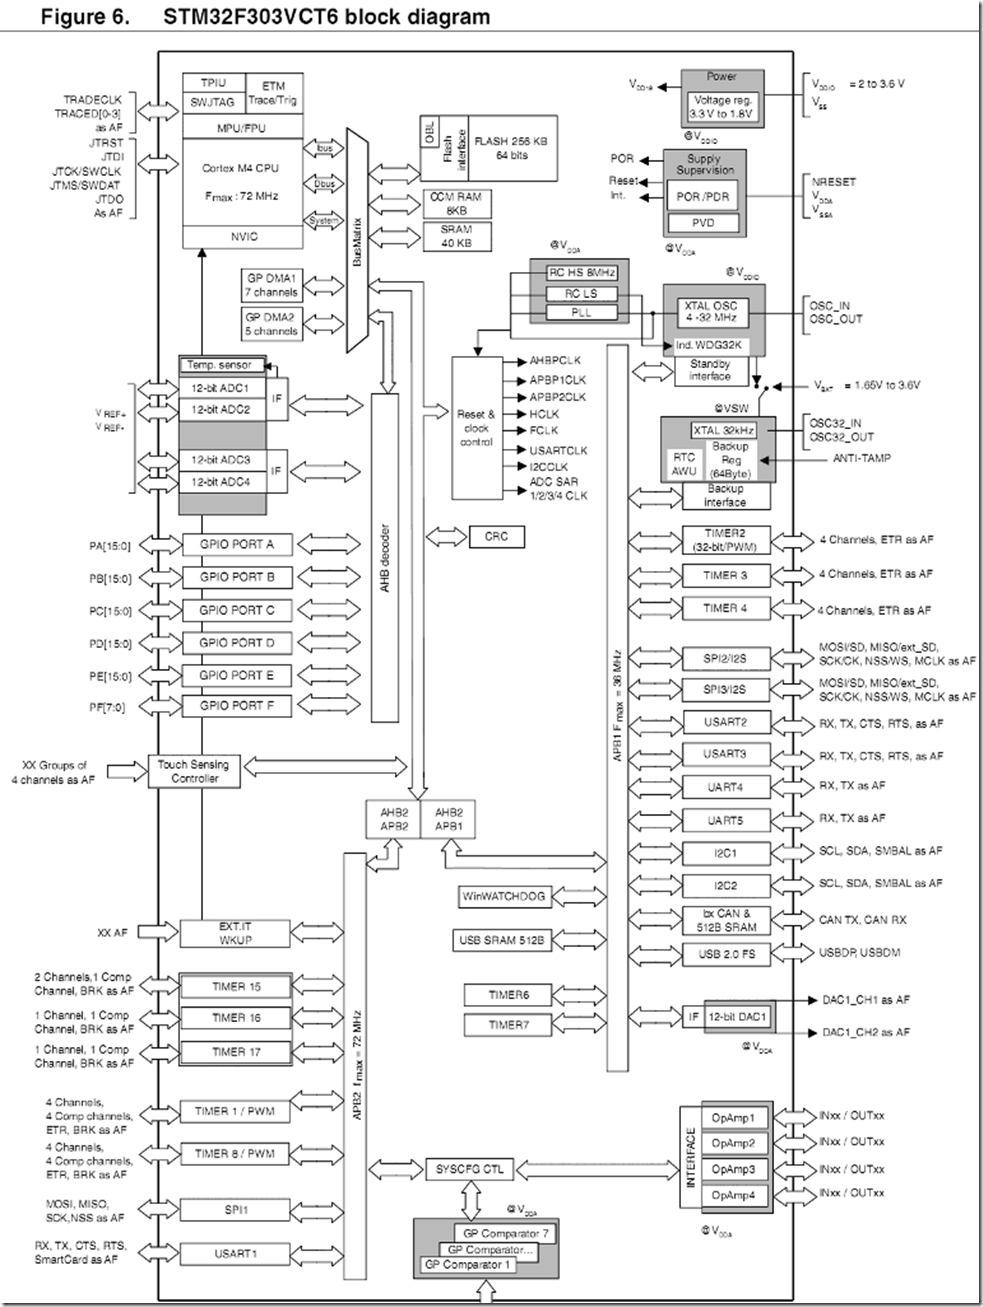 STM32F303-BlockDiagram